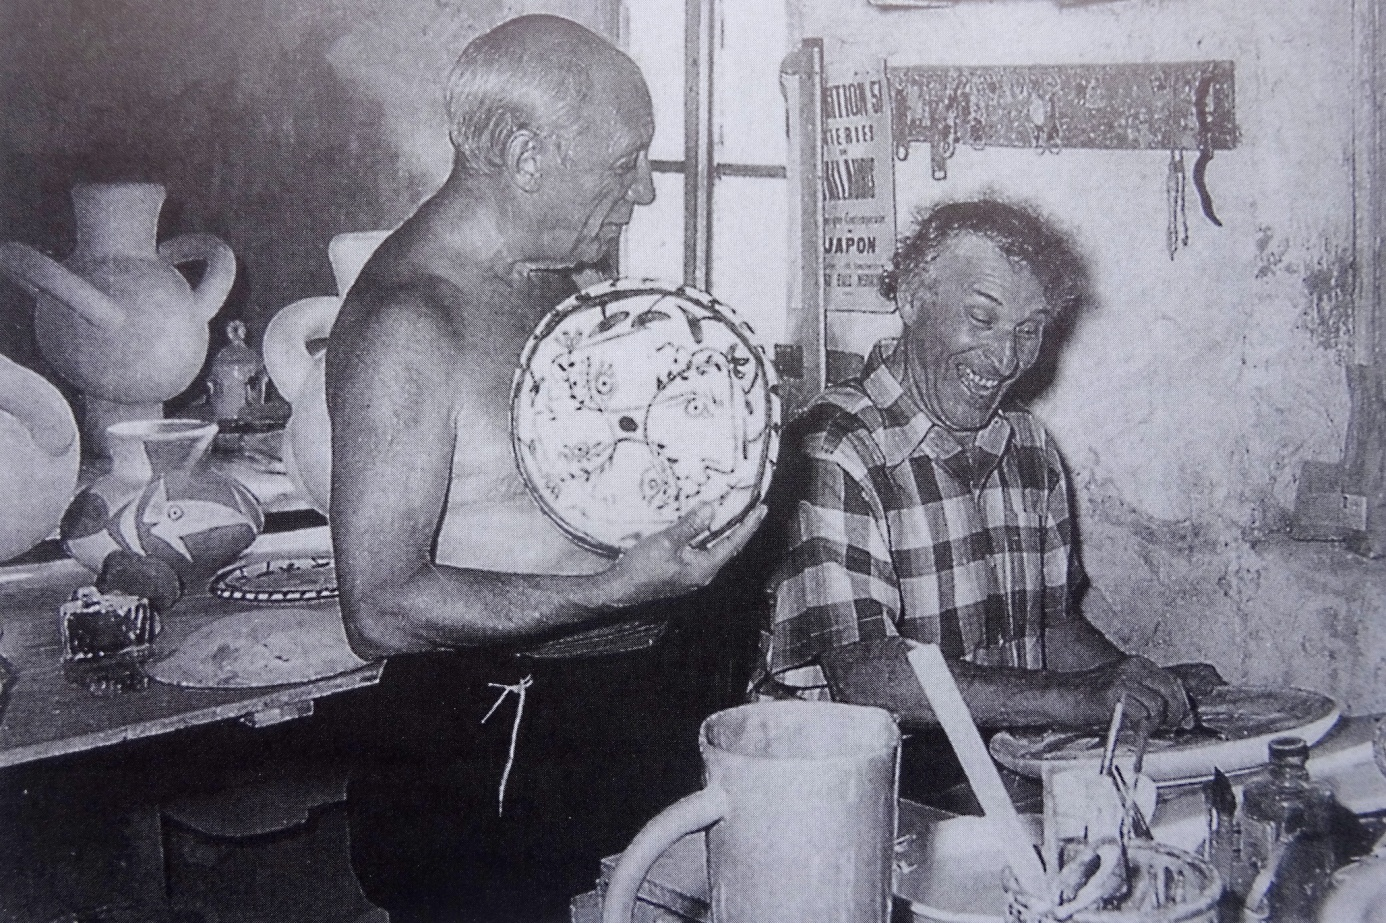 Picasso en Chagall